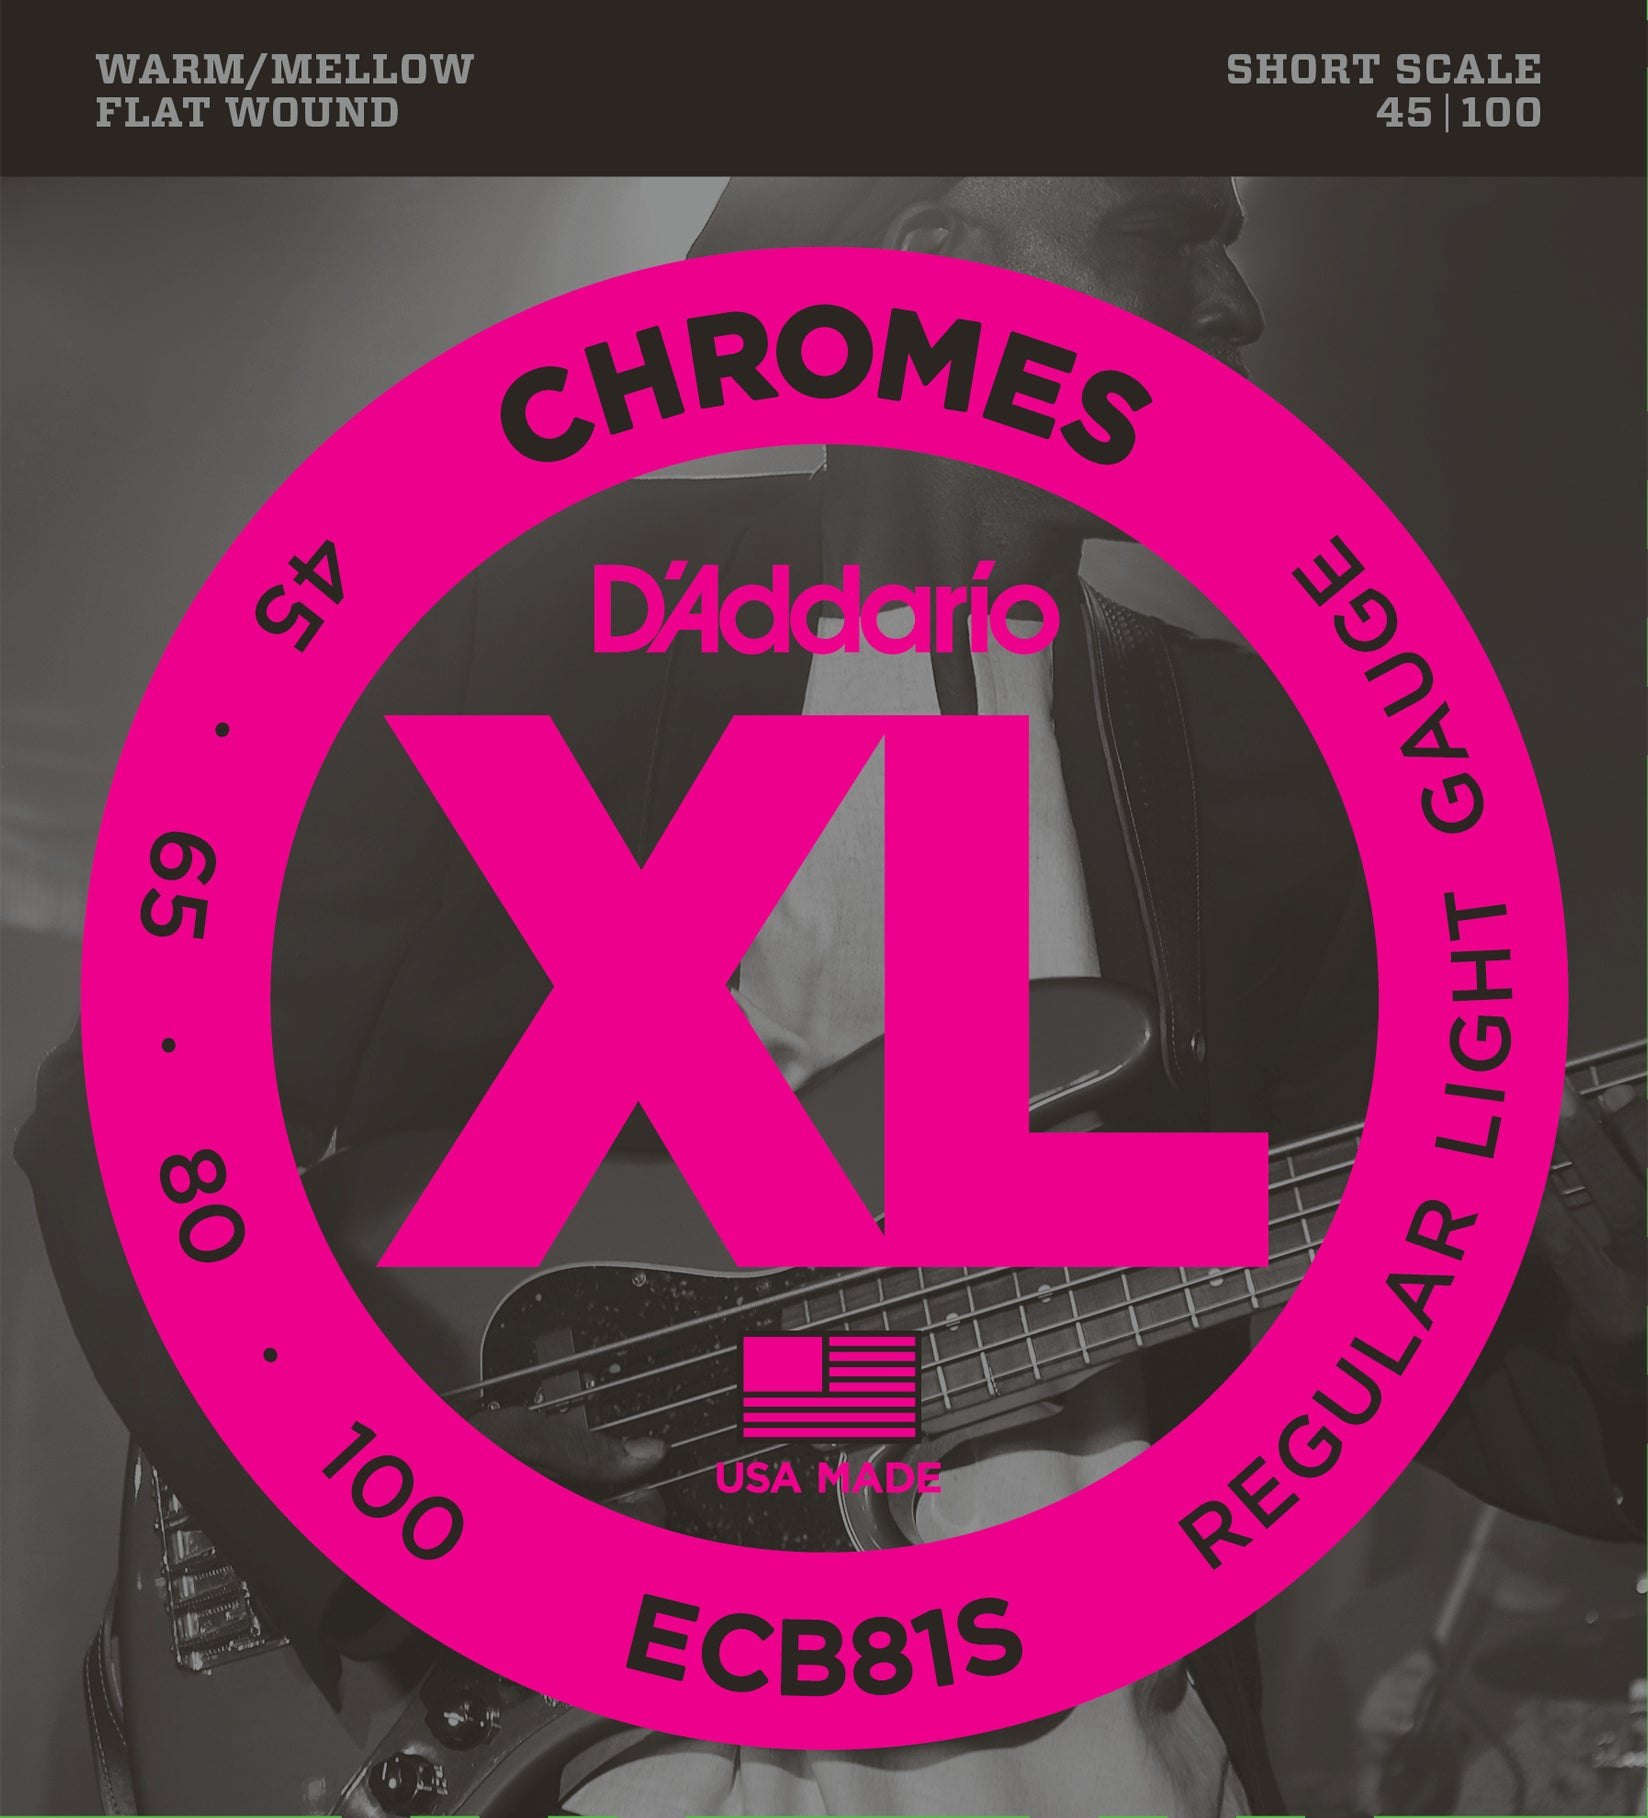 D'ADDARIO CHROMES FLAT WOUND BASS STRINGS SHORT SCALE REGULAR LIGHT 45-100